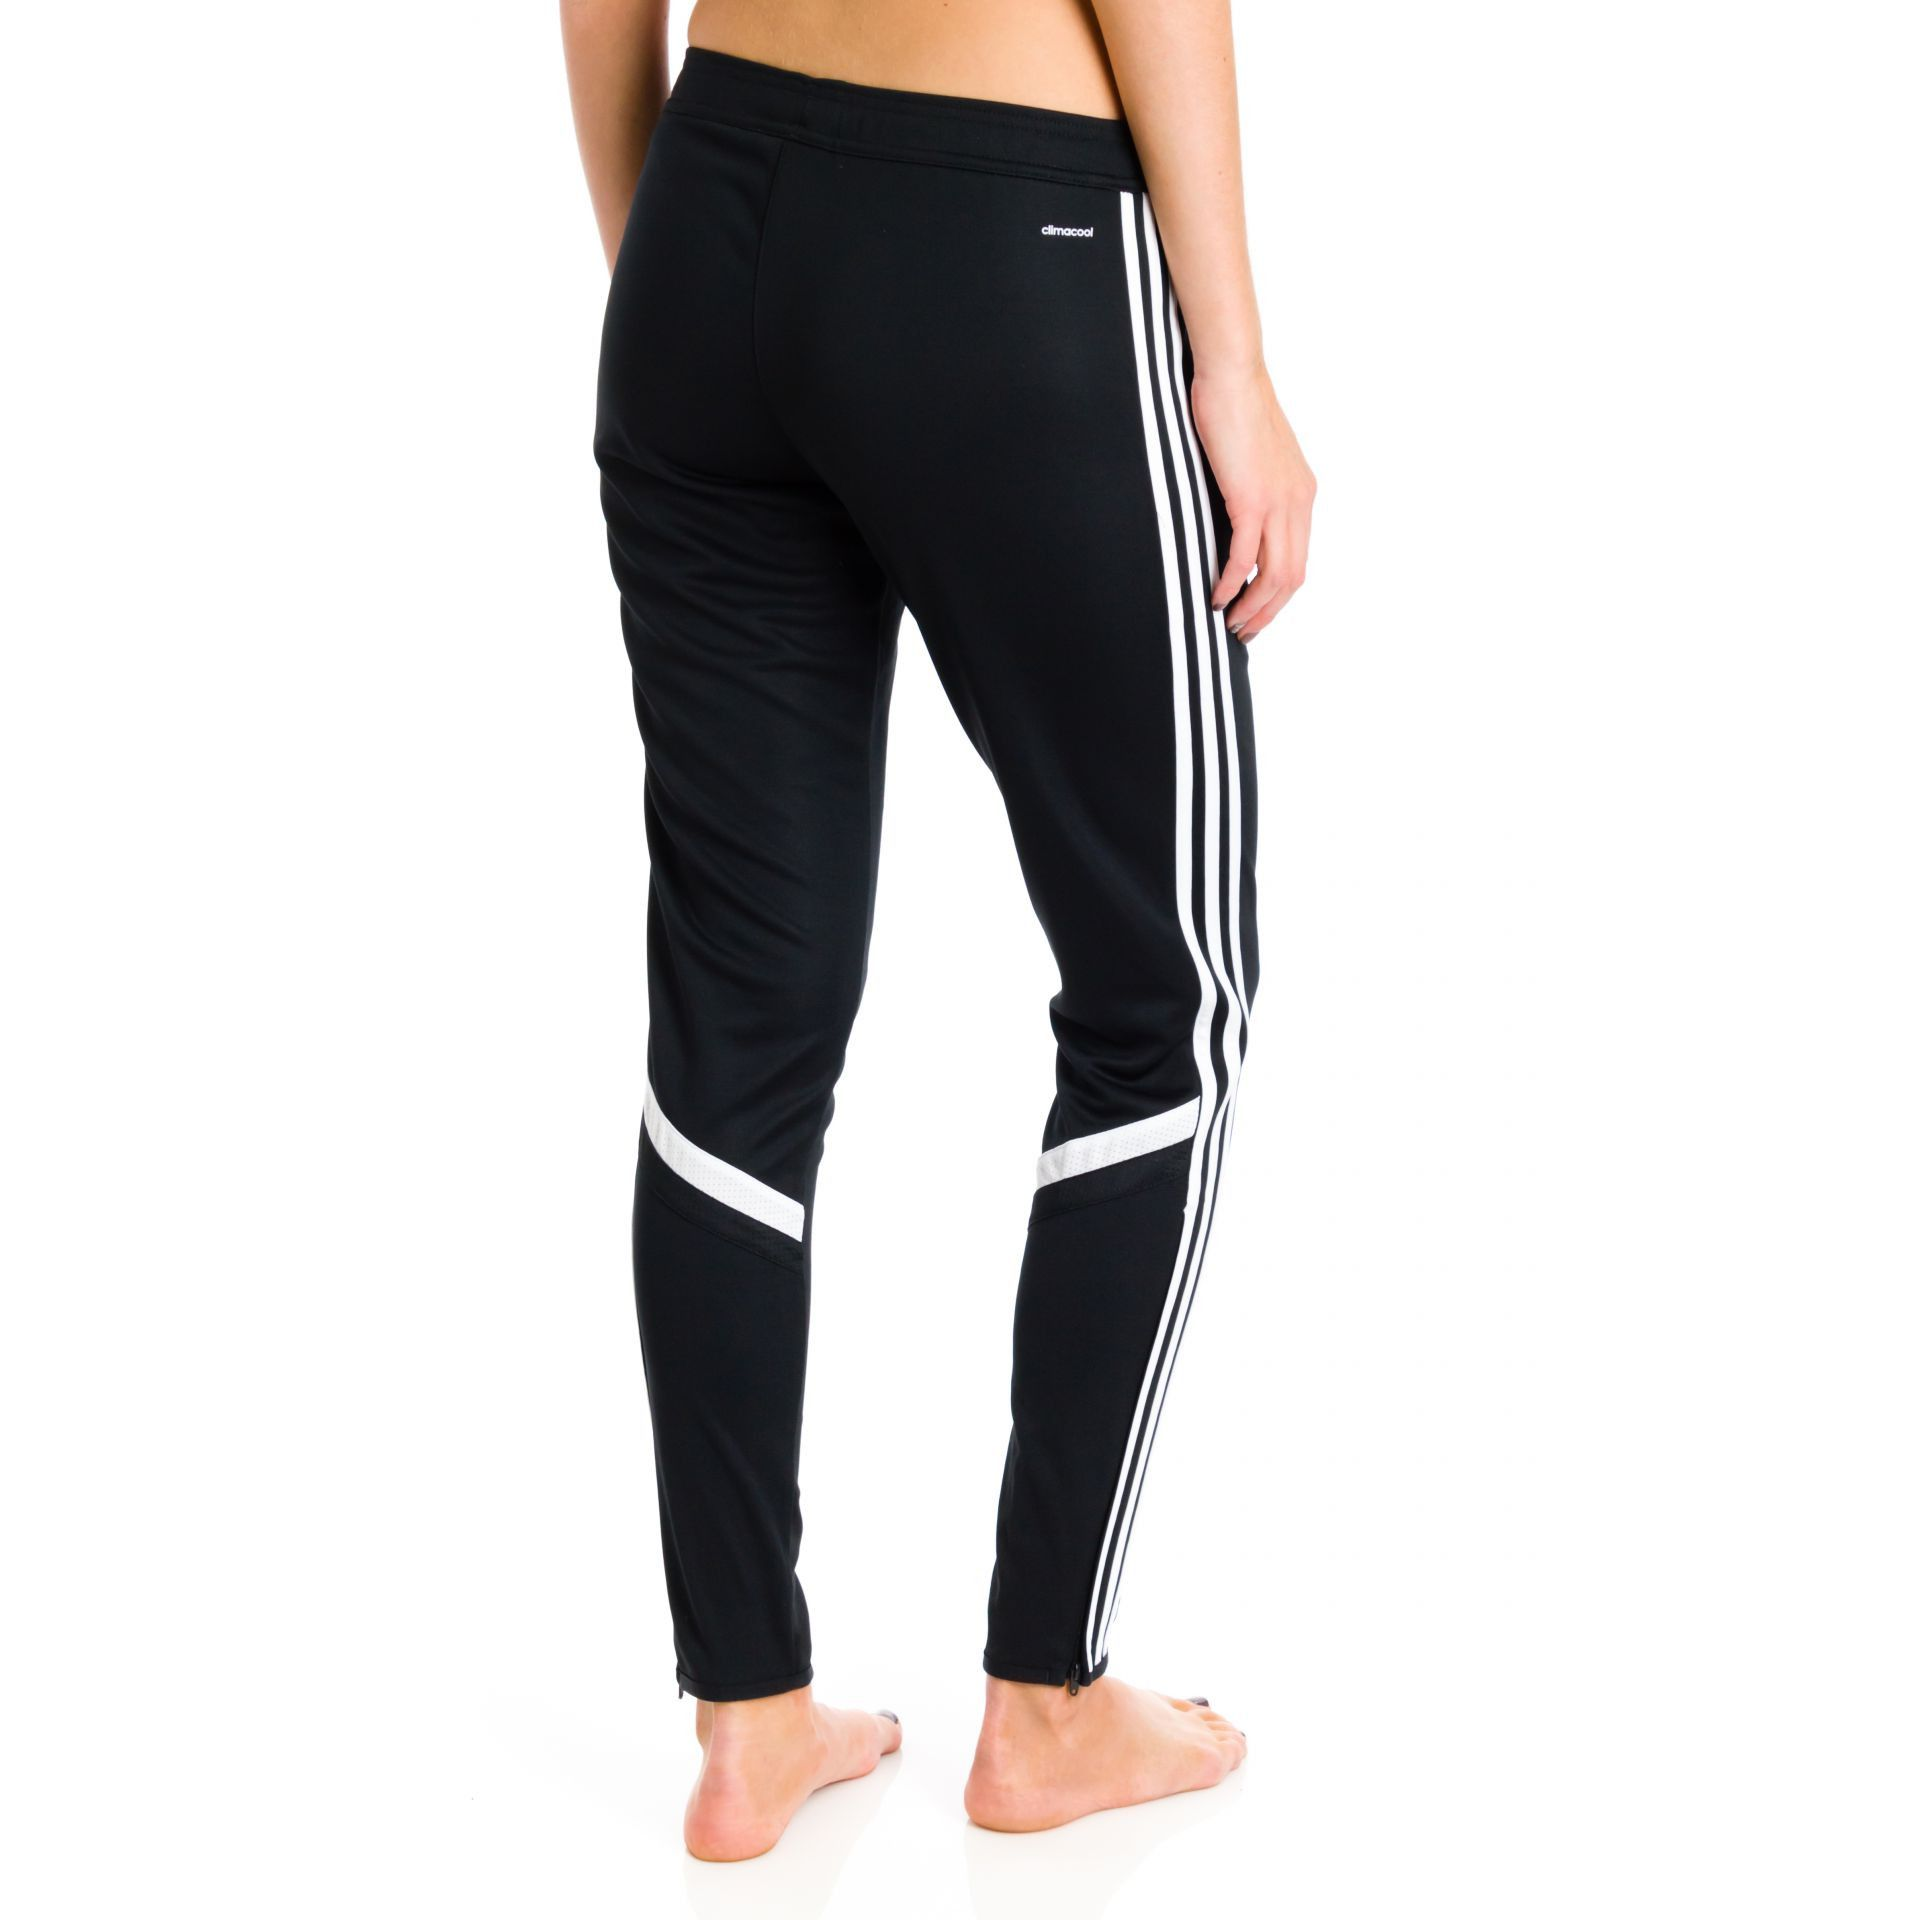 7ce0baad185e2 adidas Women's Condivo 14 Training Pants (Black/White) | yaasss ...